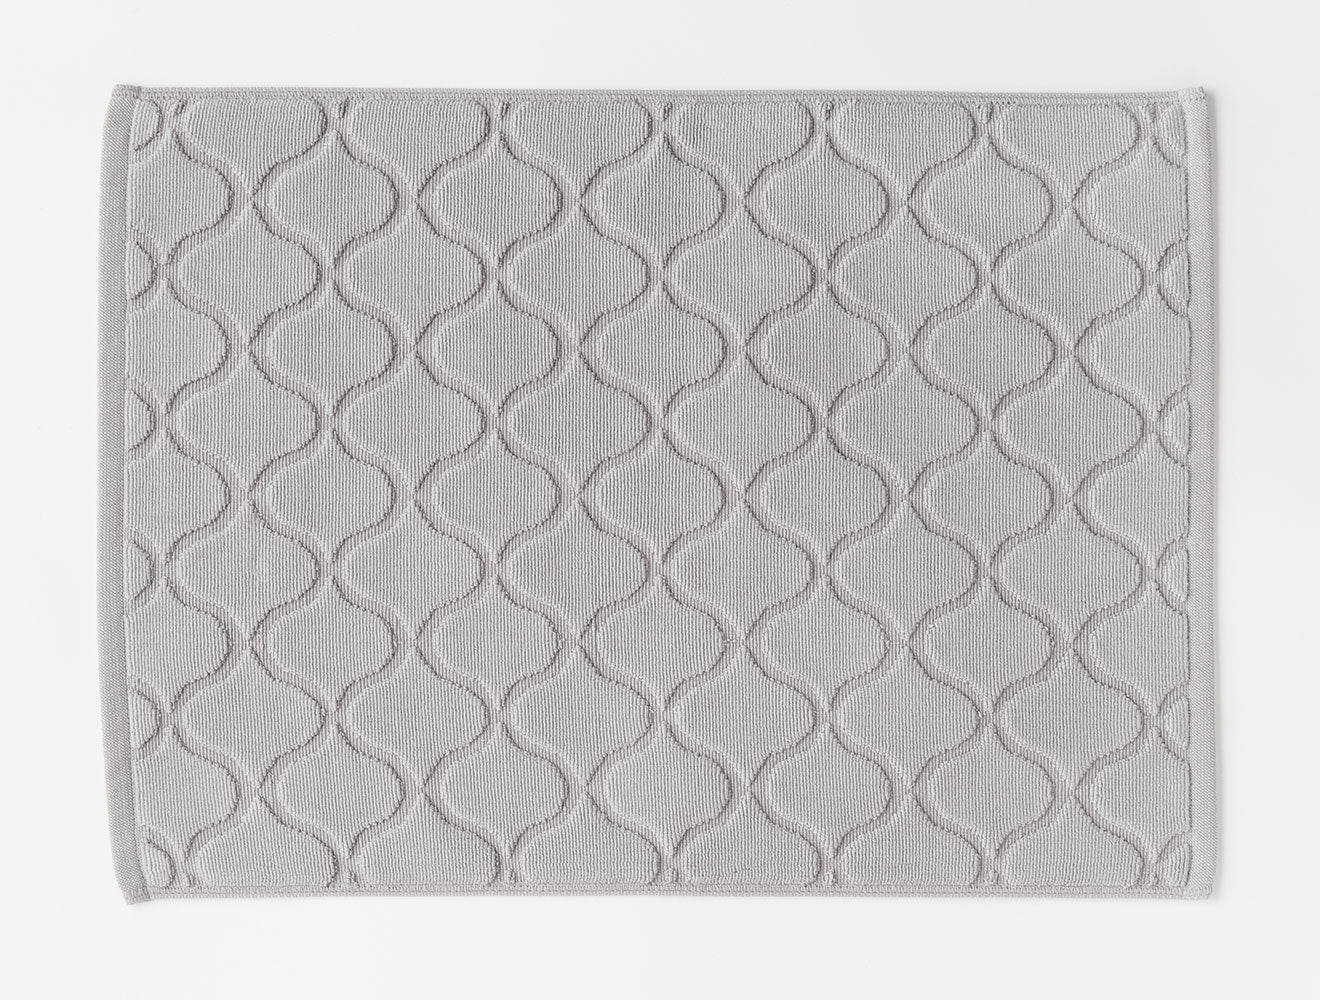 BATH MAT TILE MAT / GREY